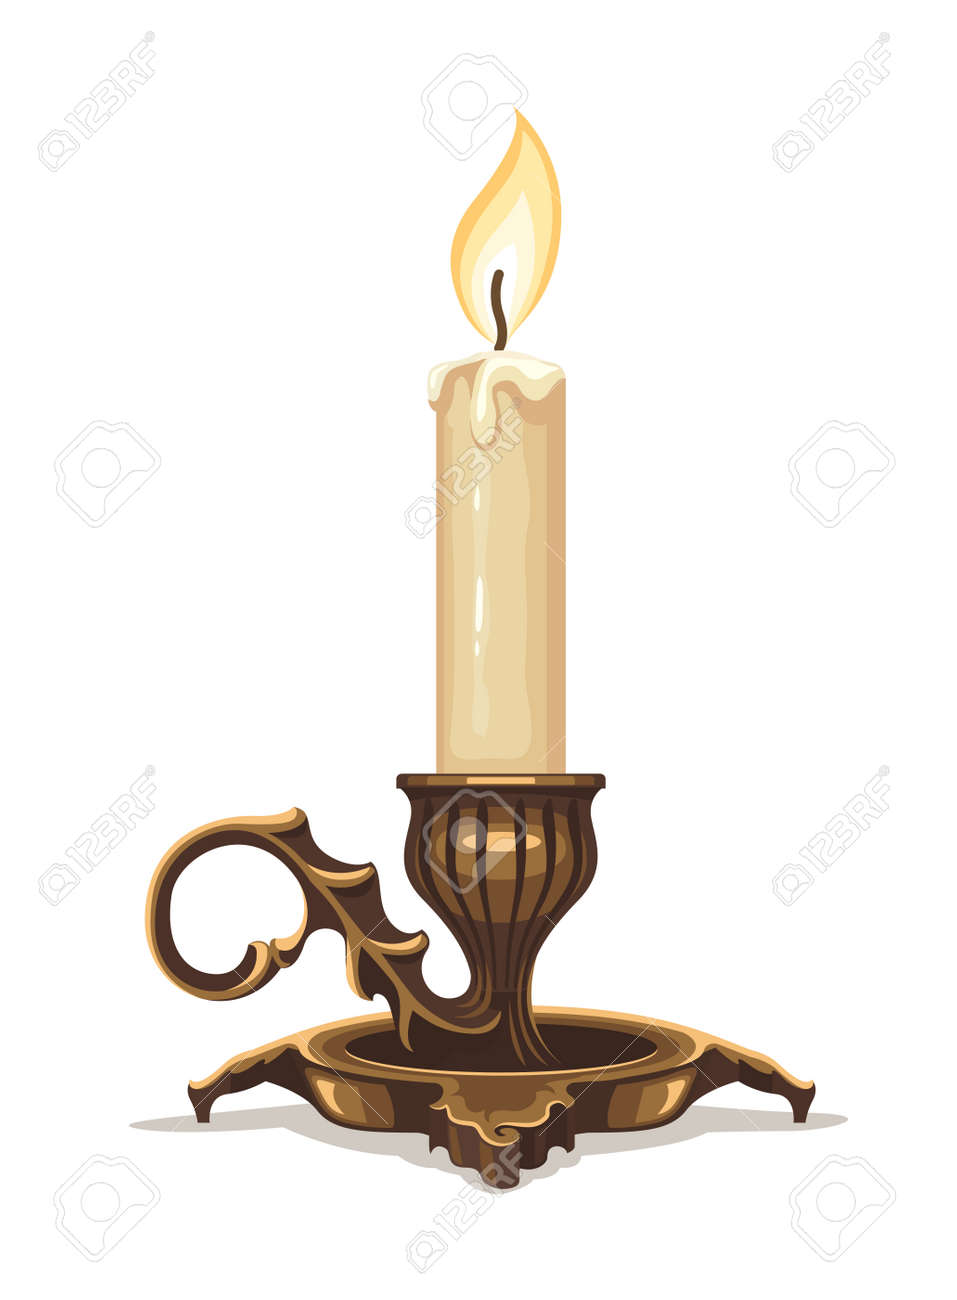 Burning candle in bronze candlestick. Stock Vector - 38745798